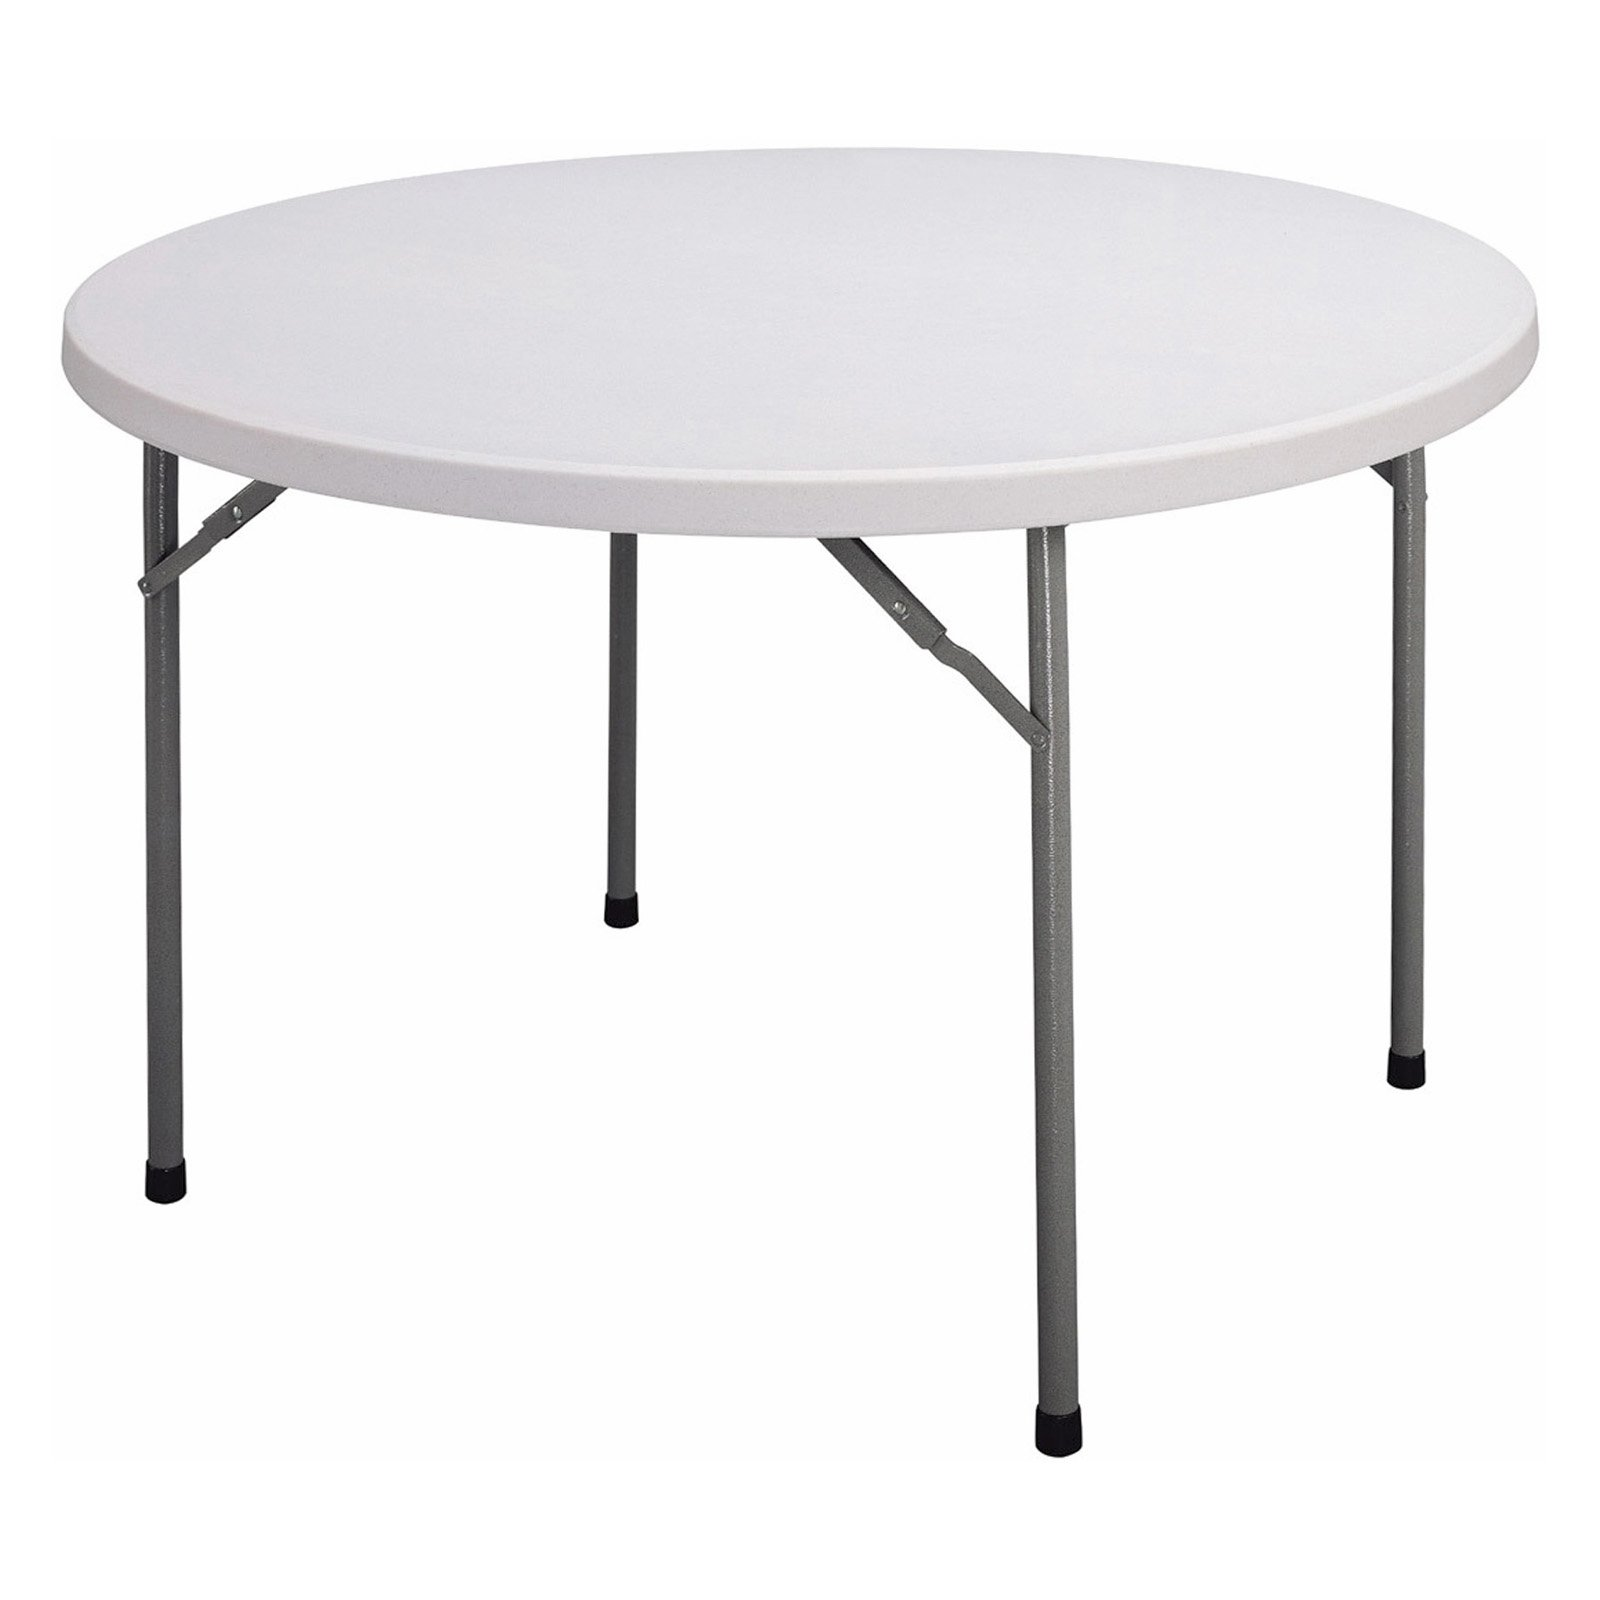 Correll Round Blow Molded Folding Banquet Table